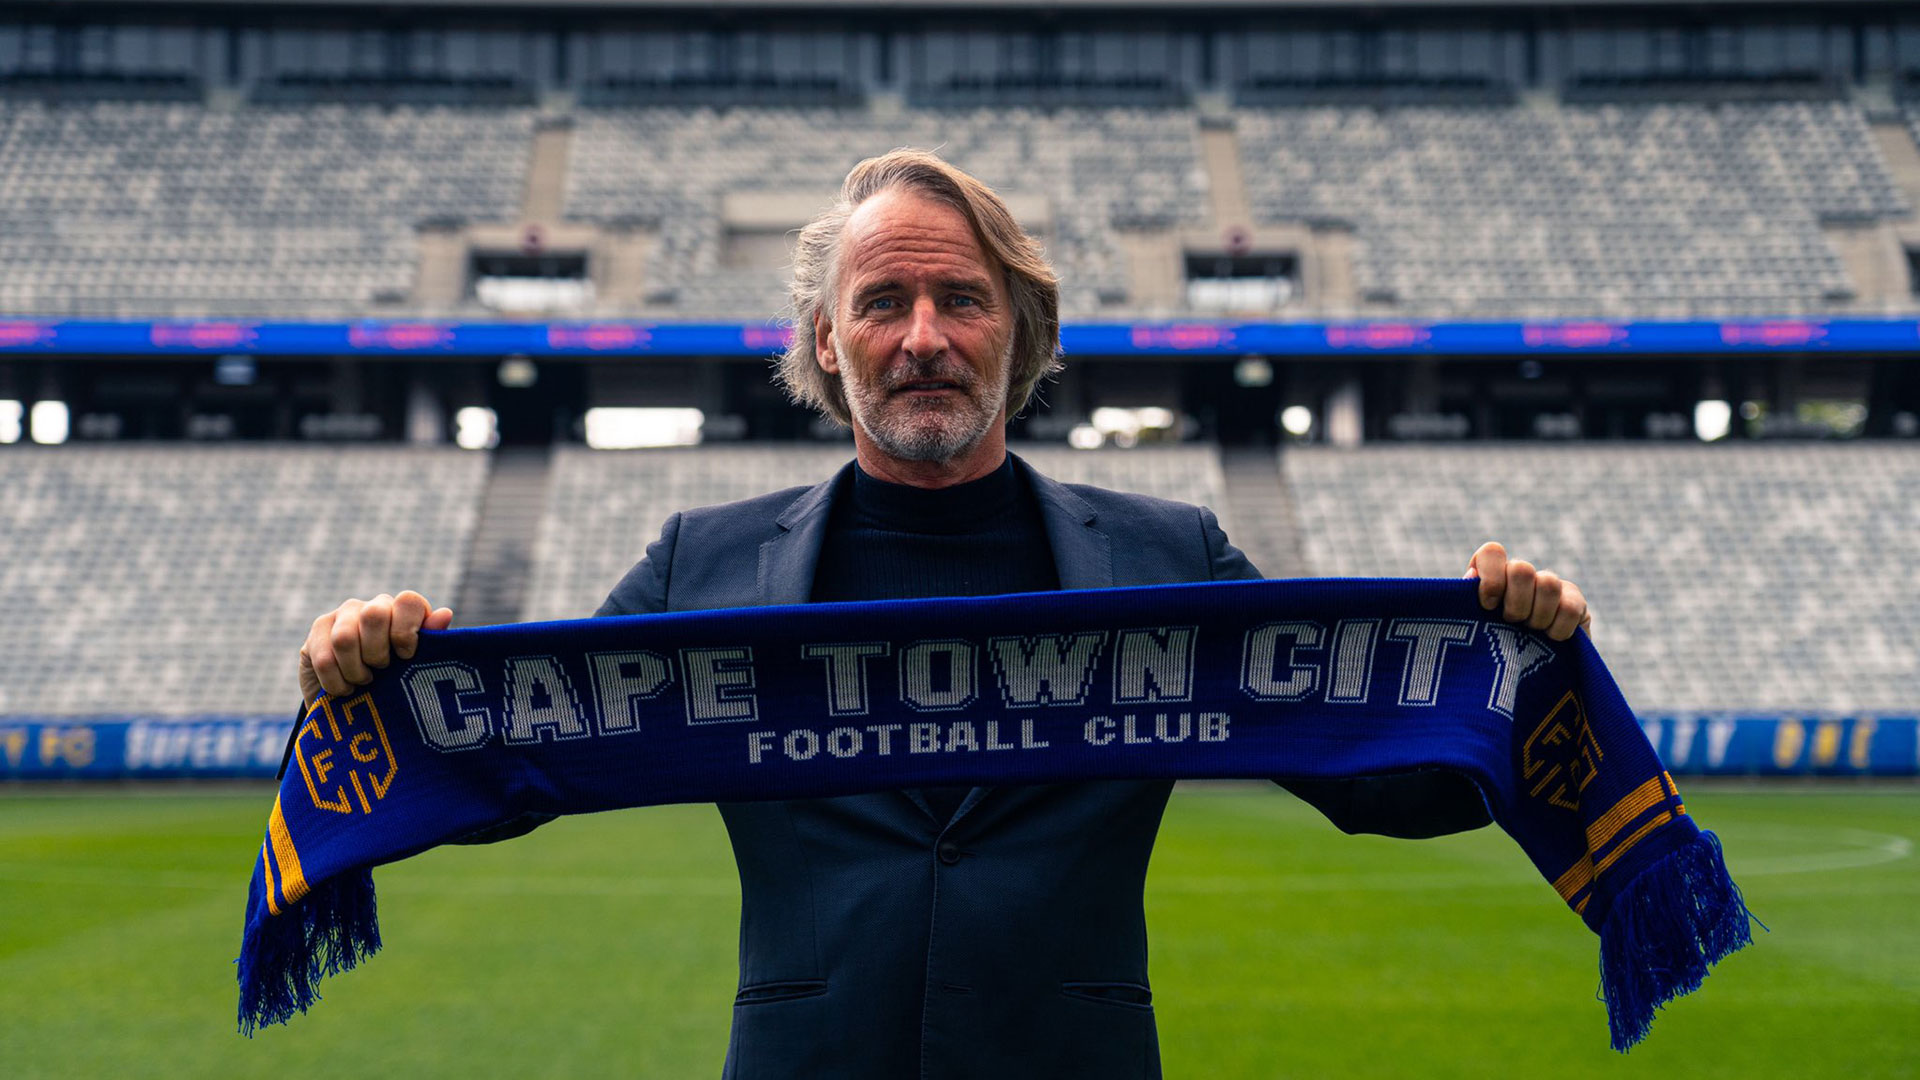 Cape Town City midfielder Nodada on Riekerink's humility and the pain of losing McCarthy